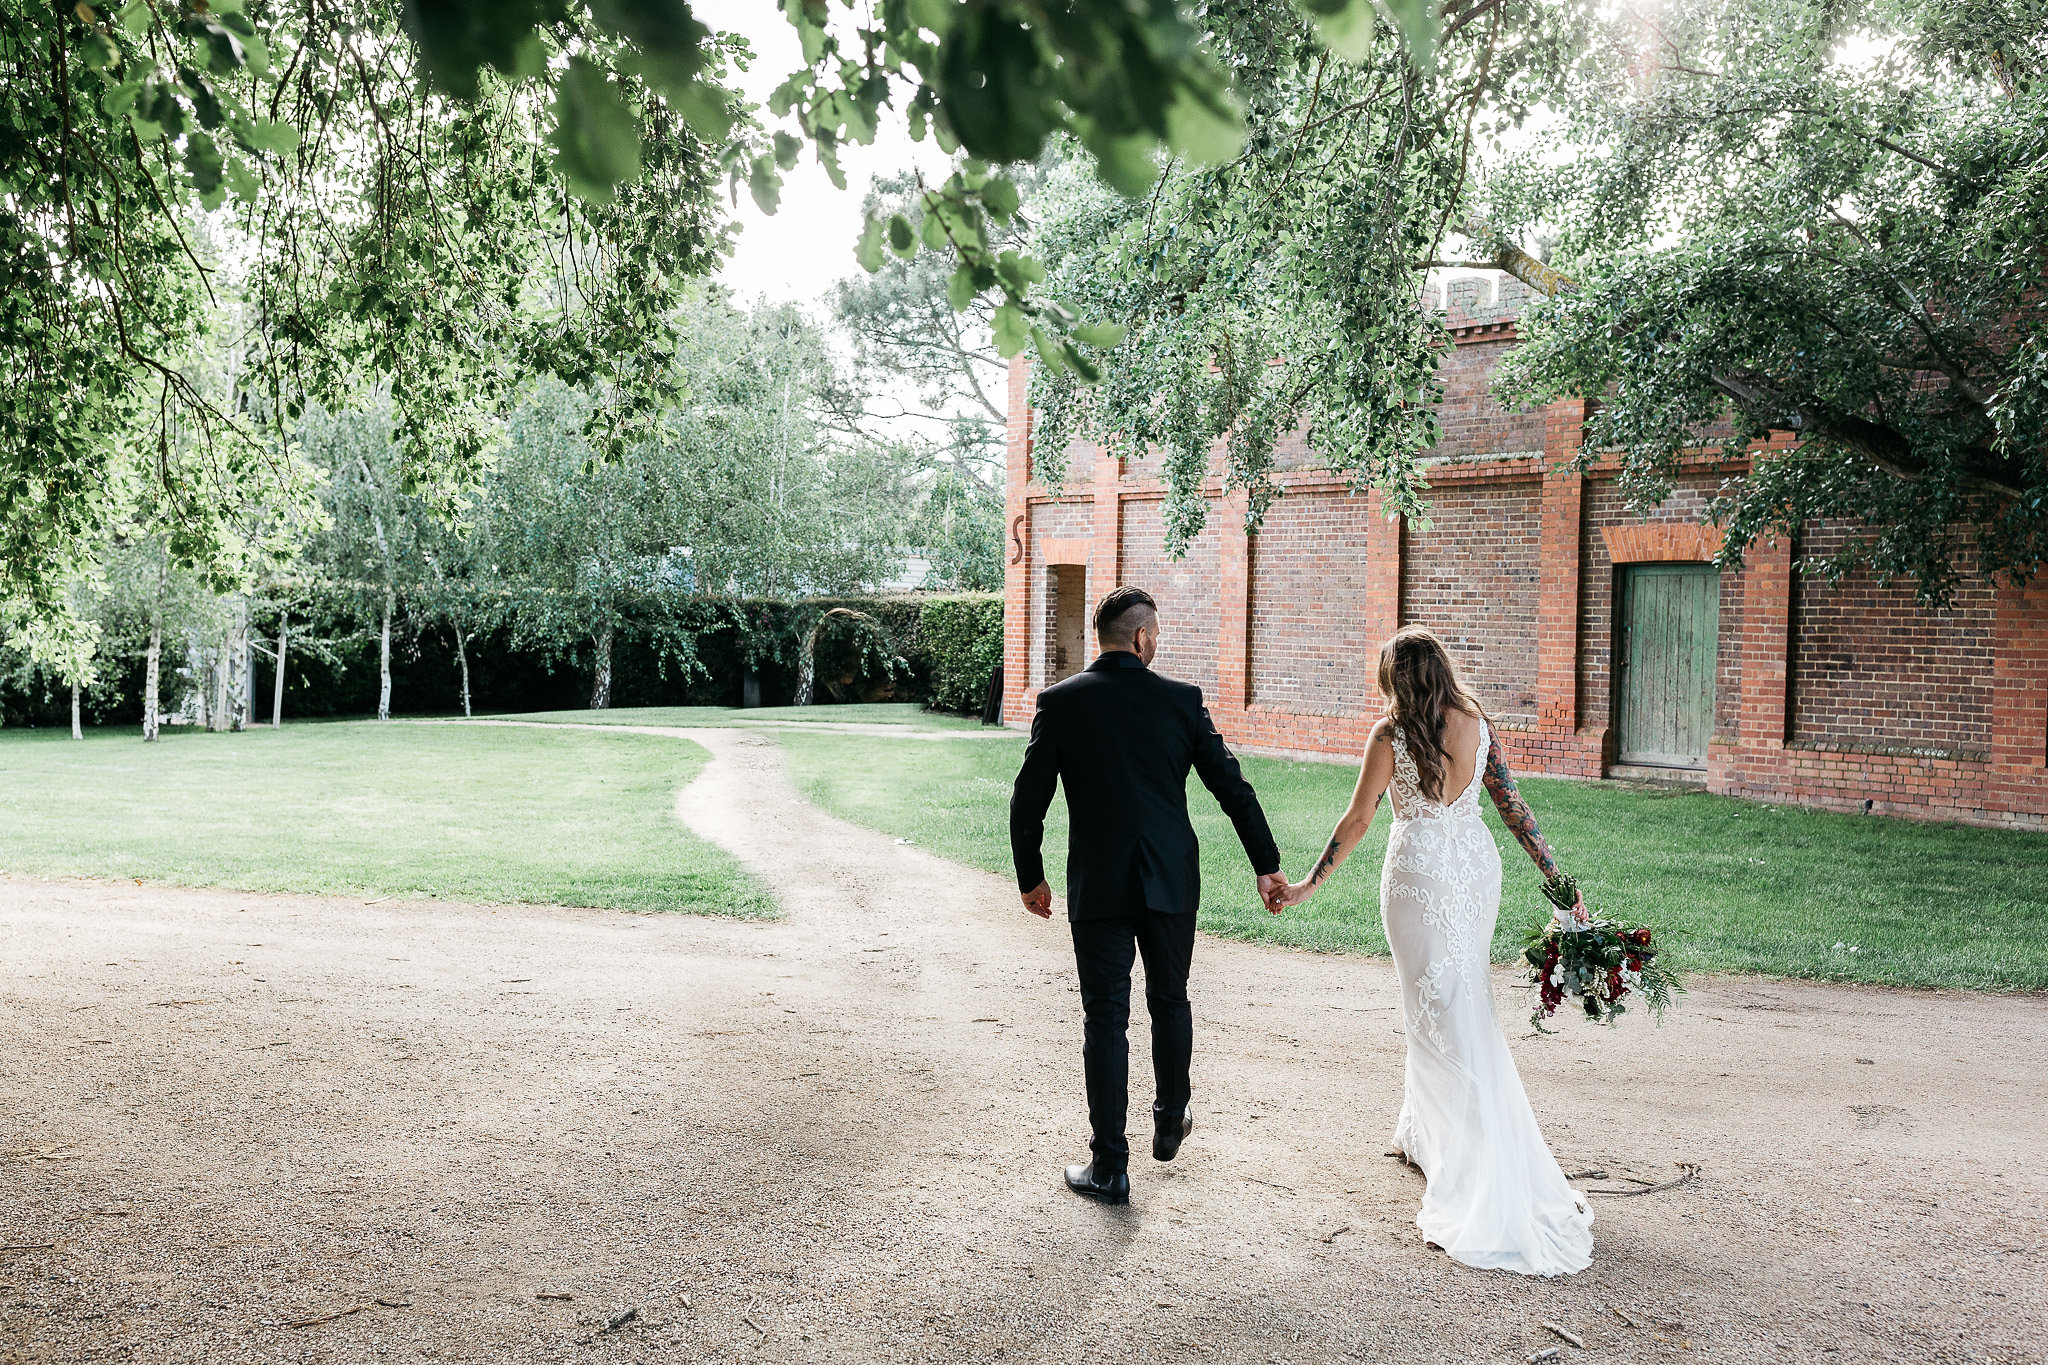 Weddings Receptions & Functions | Stones of the Yarra Valley